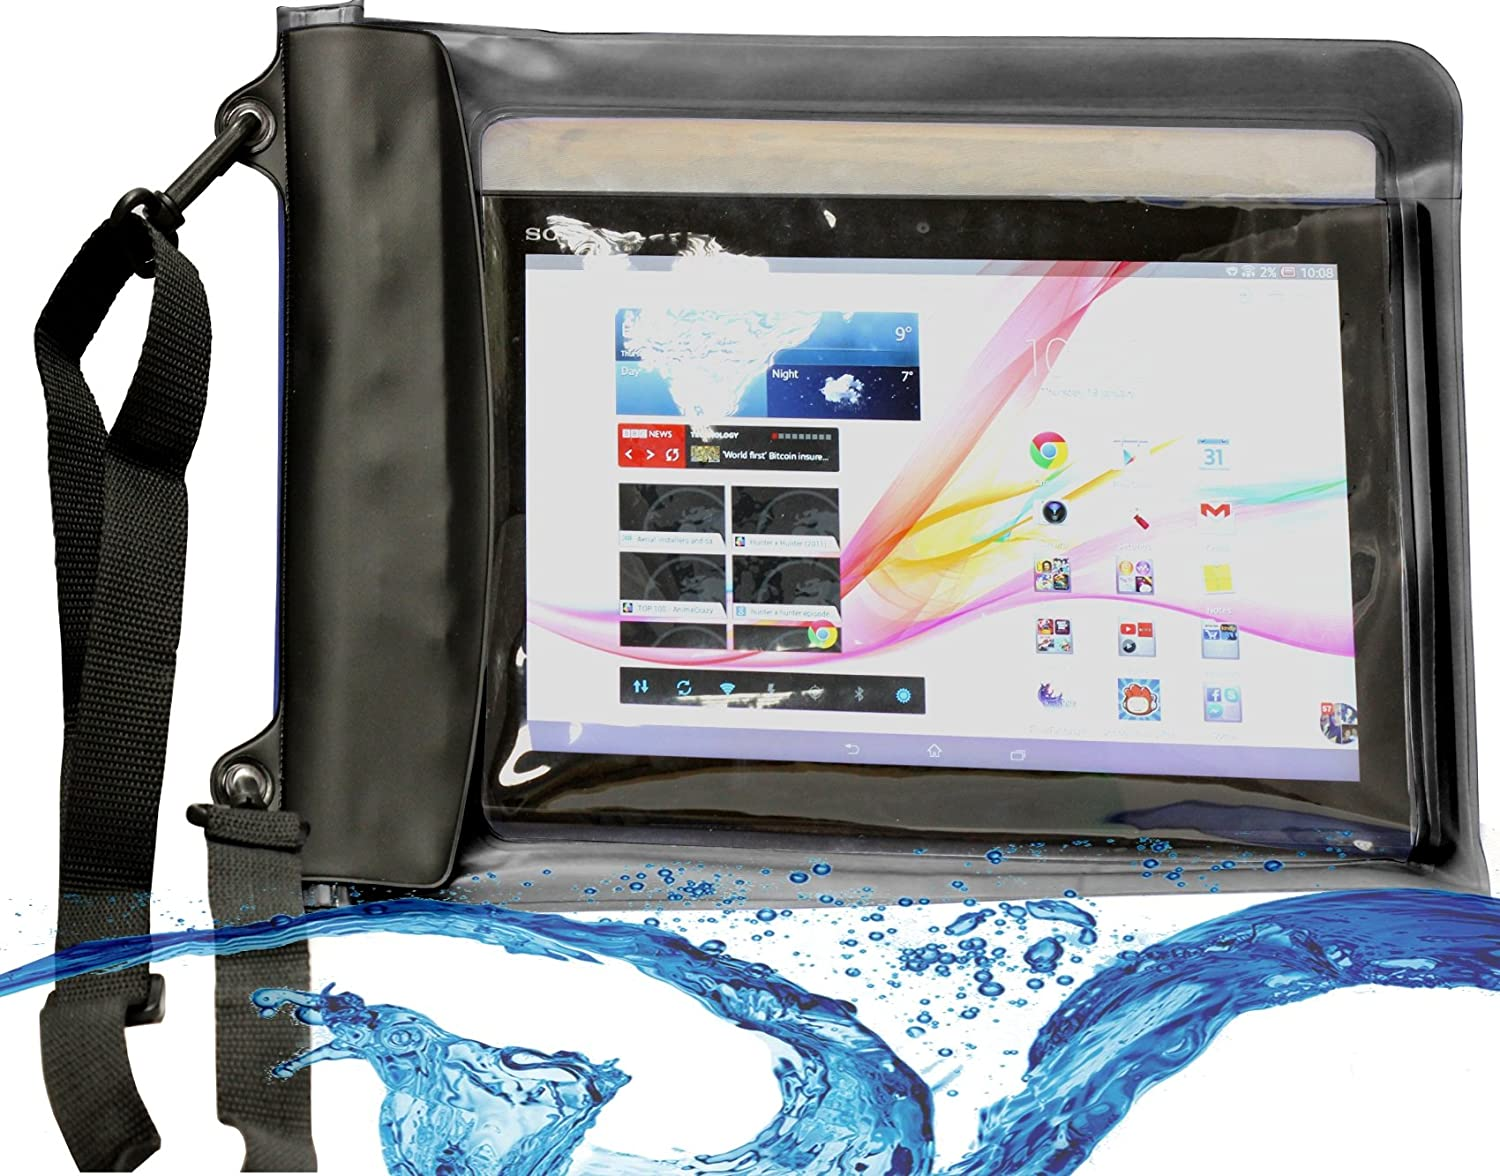 MiTAB Black Waterproof Case / Cover Compatible With The 10 Inch Tablets Including The Lenovo Yoga Tablet 10 / Lenovo IDEATAB S6000 TABLET / Lenovo Miix 10 / Lenovo THINKPAD TABLET 2 / Lenovo IDEATAB LYNX / Lenovo THINKPAD HELIX